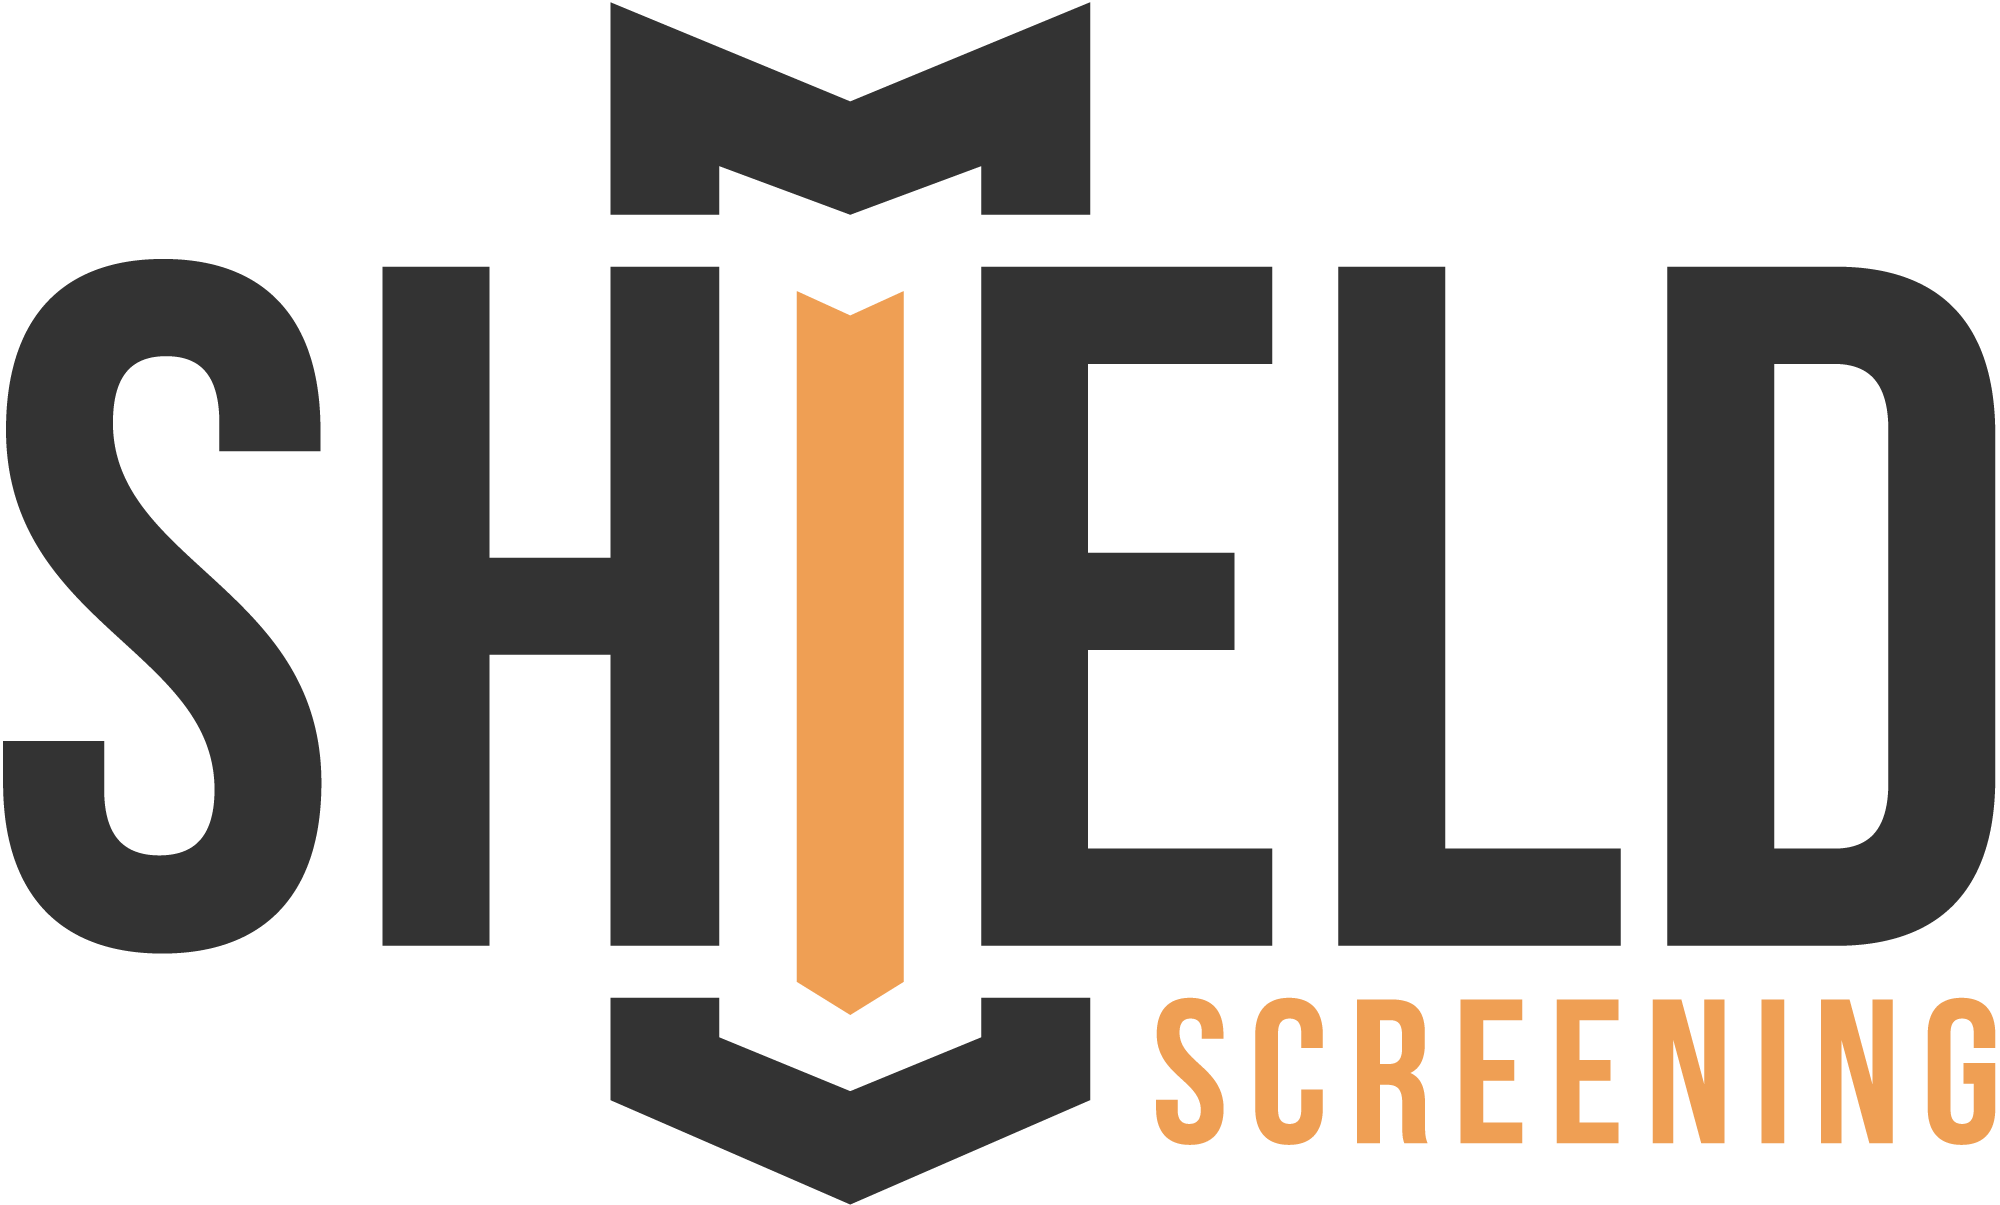 Shield-Screening-2018-Color.png